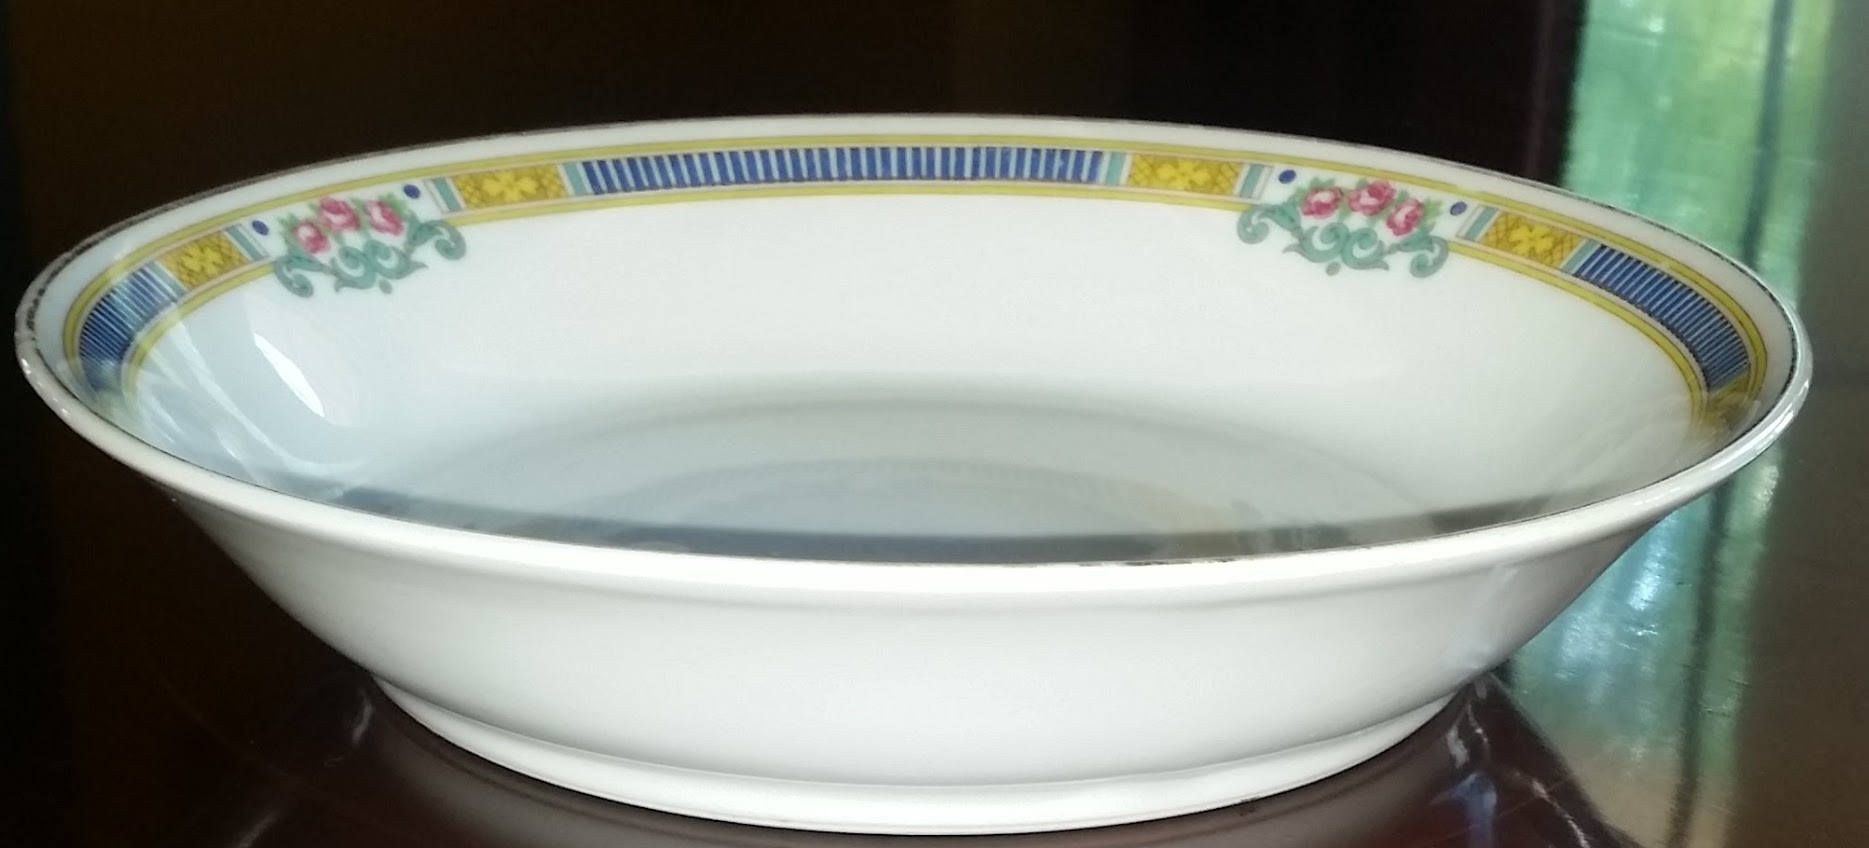 Limoges China Patterns Gold Trim Cool Decoration